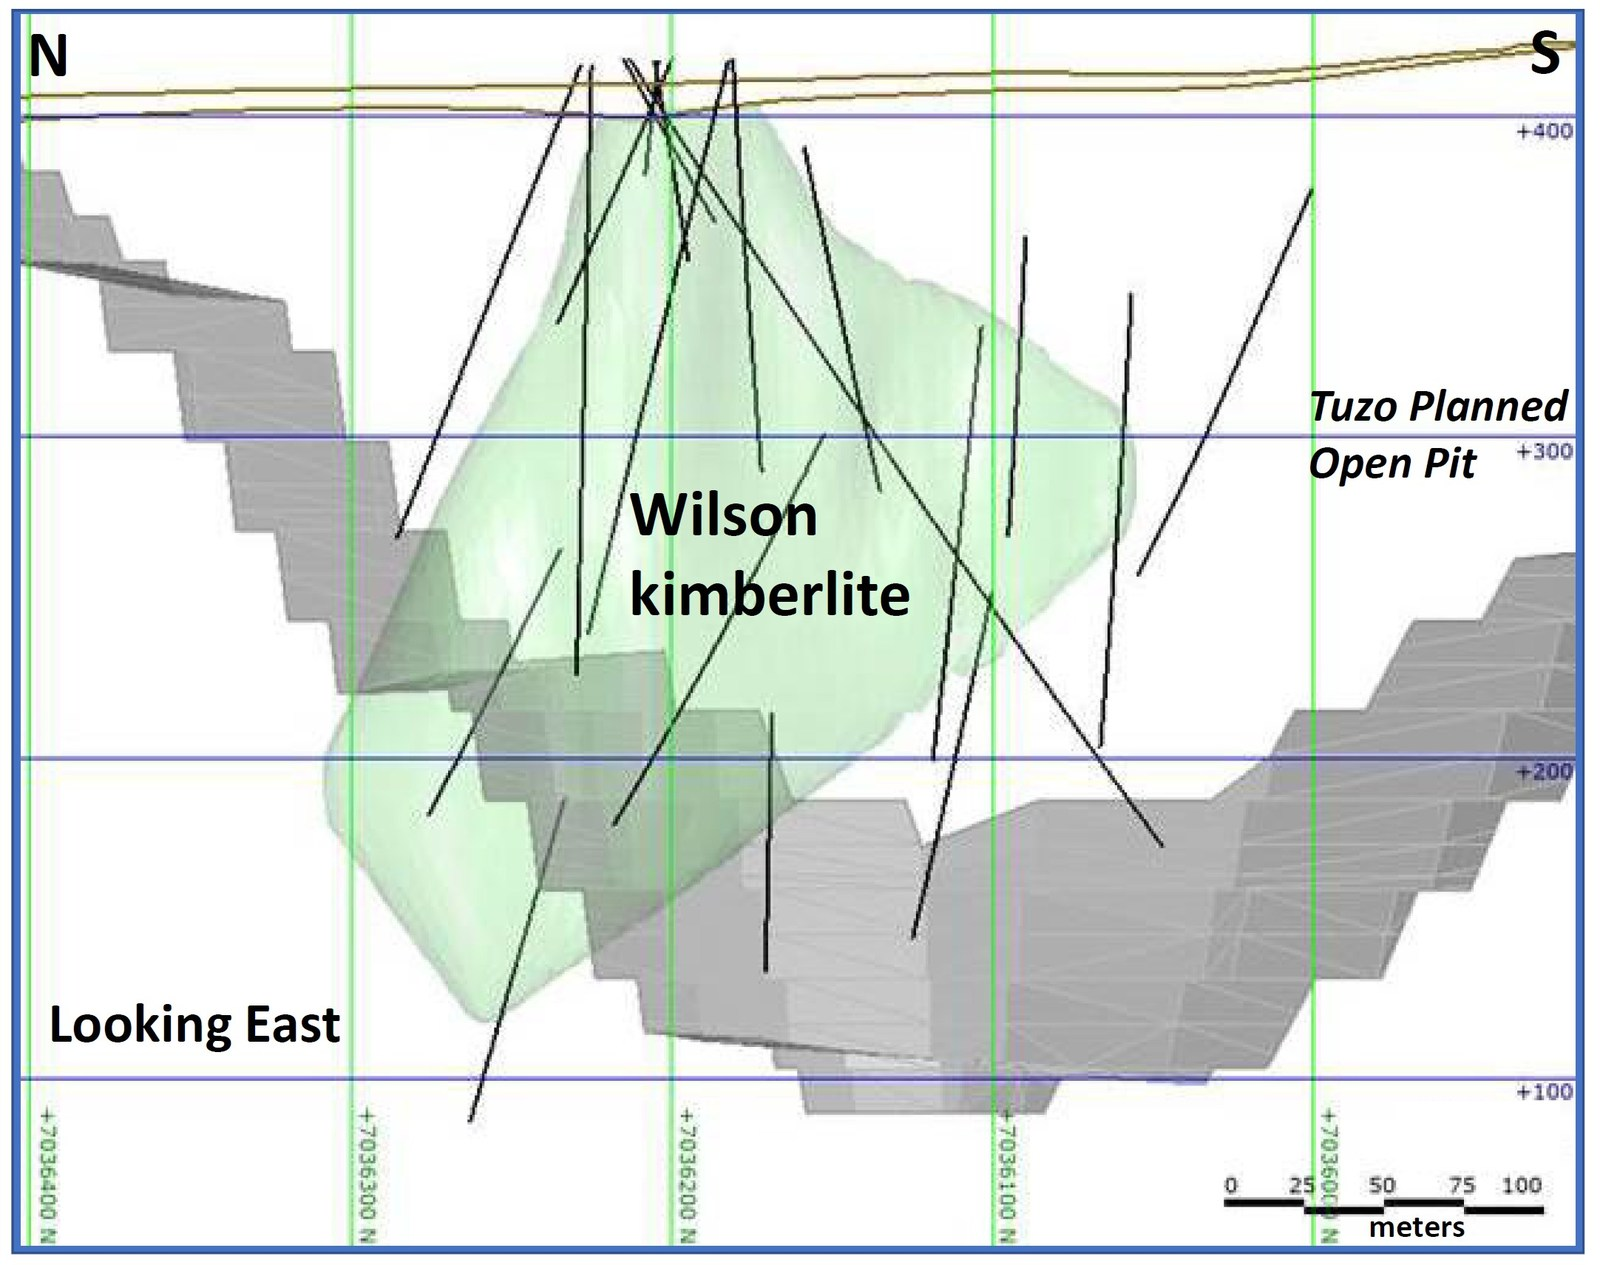 Preliminary cross-sectional image of the Wilson kimberlite in green, looking east from Tuzo. Drill traces are as black lines. Lake surface and bottom sediments are outlined in brown. The proposed open pit profile for the Tuzo kimberlite is in gray. Elevations are in meters above sea level. Not all drill traces are shown.